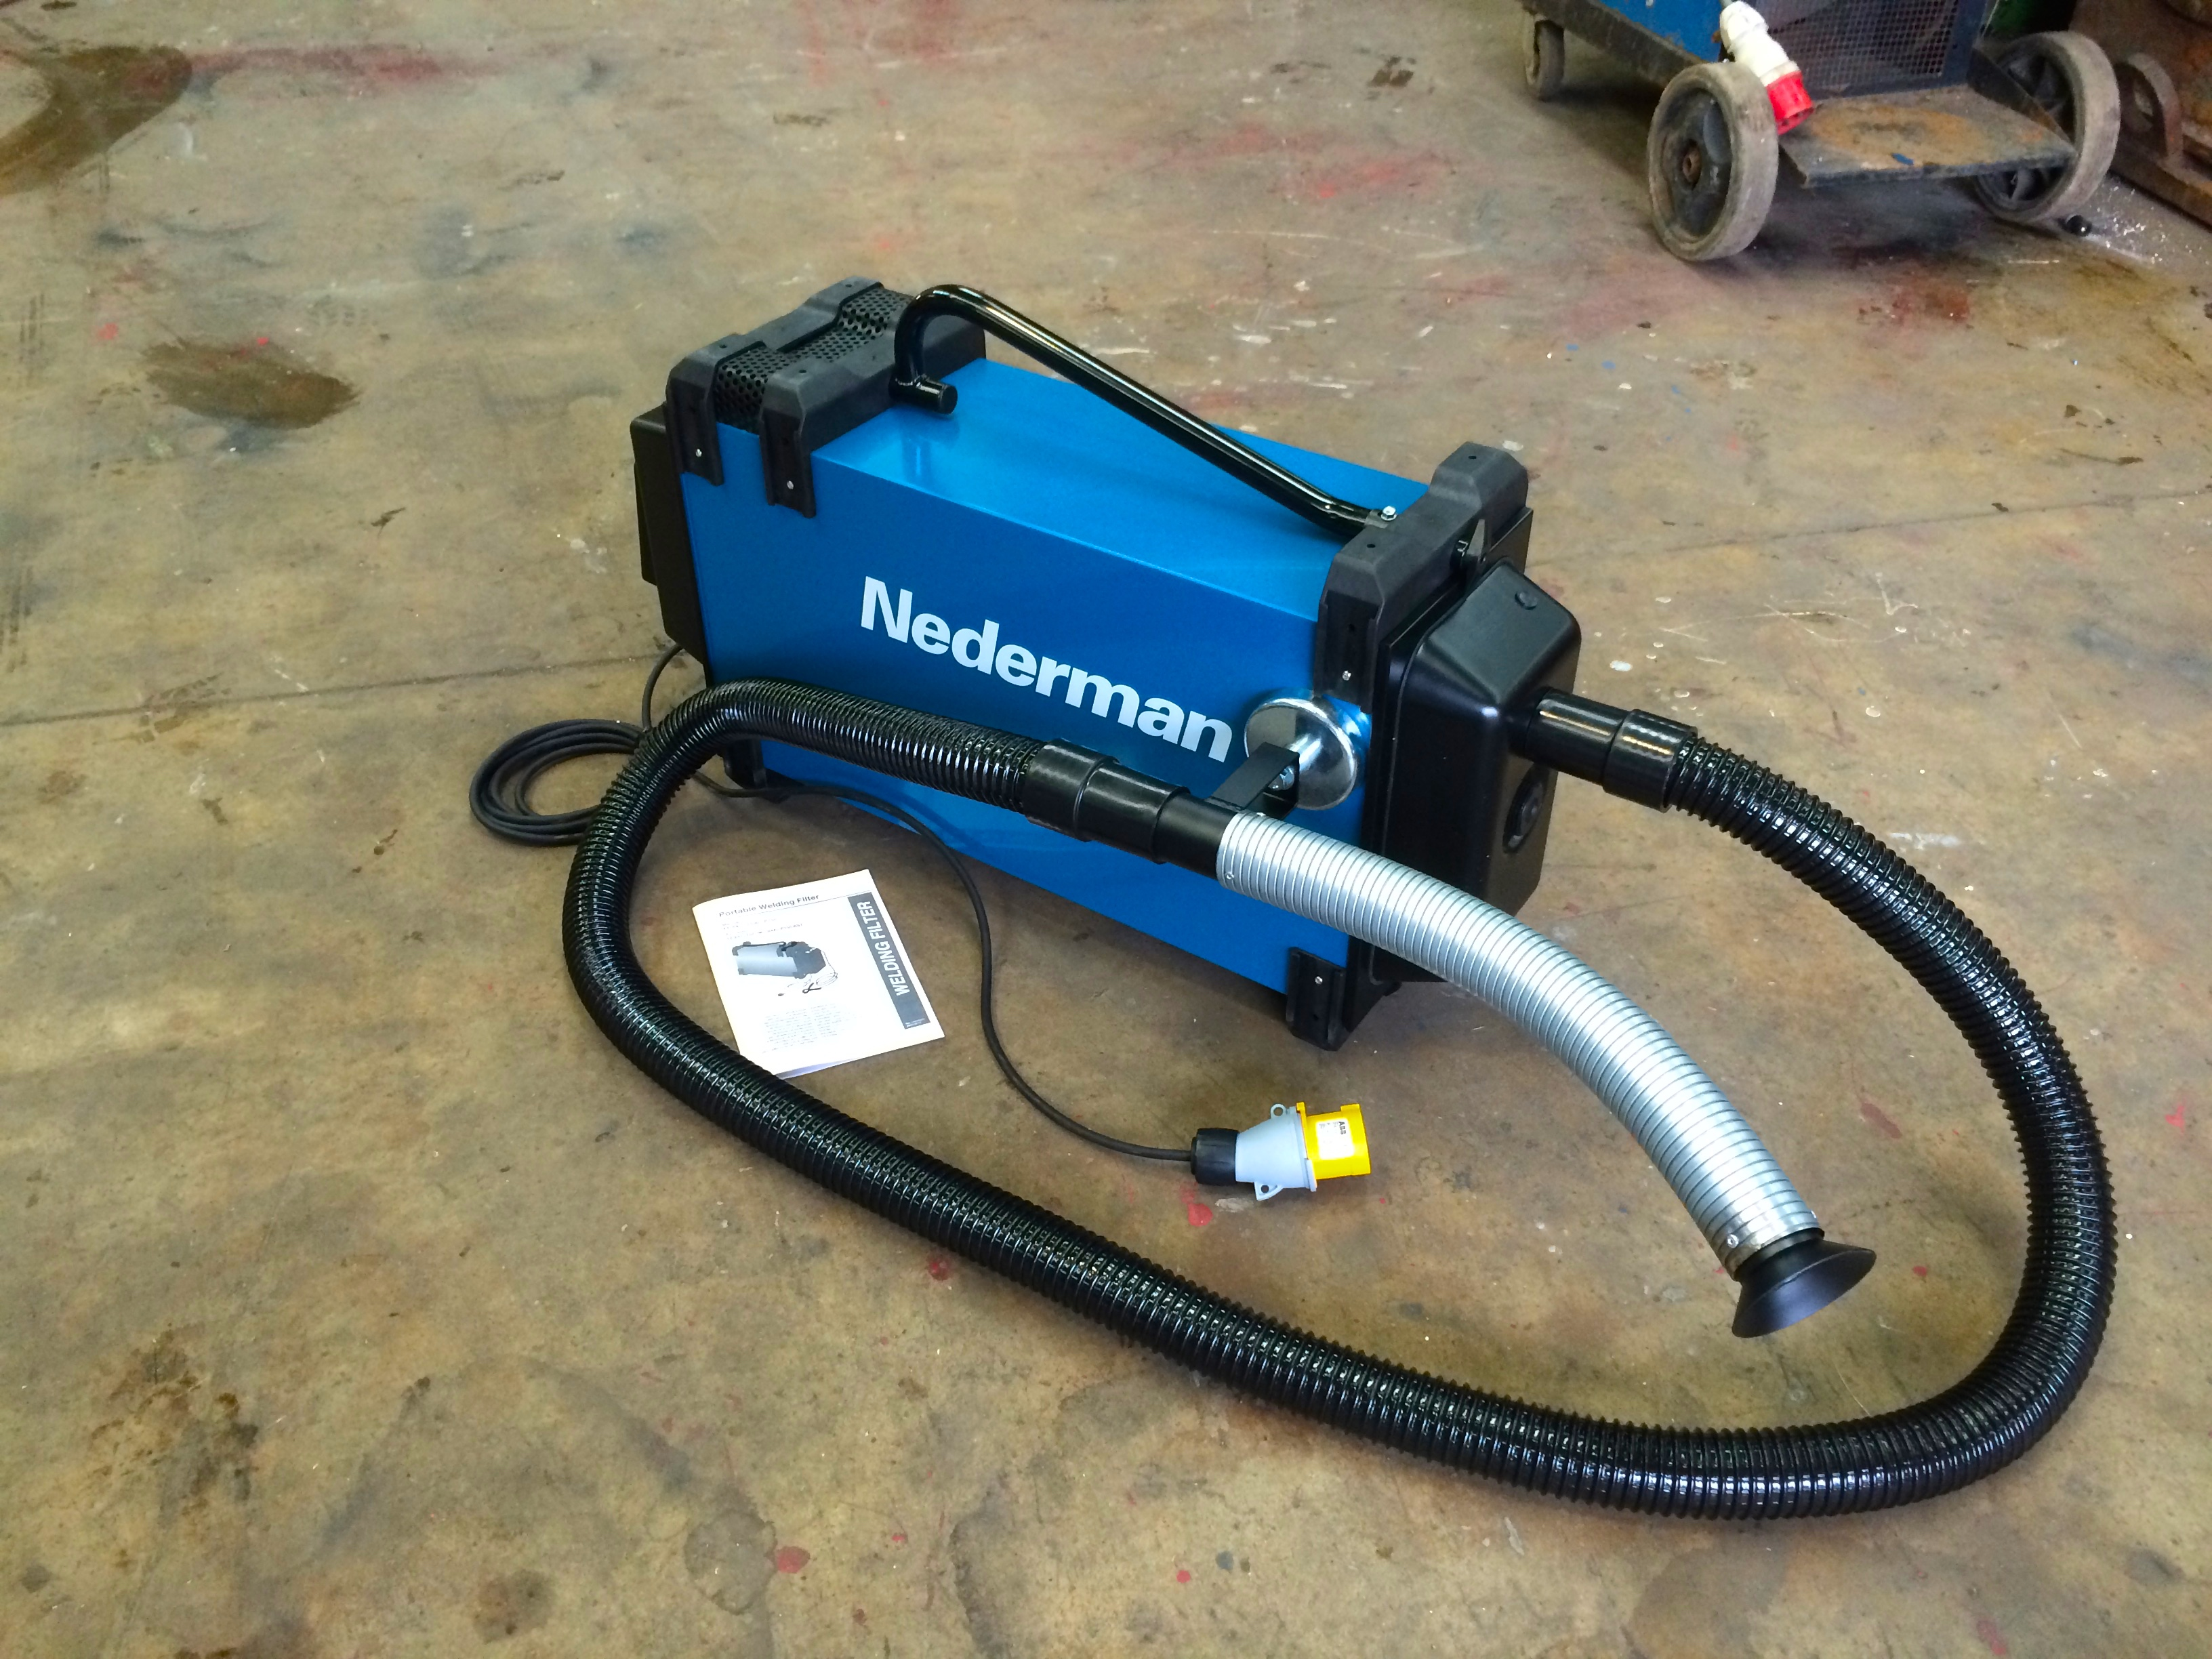 nederman eliminator 840 portable fume extractor with magnetic nozzle clamp 110v - Welding Fume Extractor